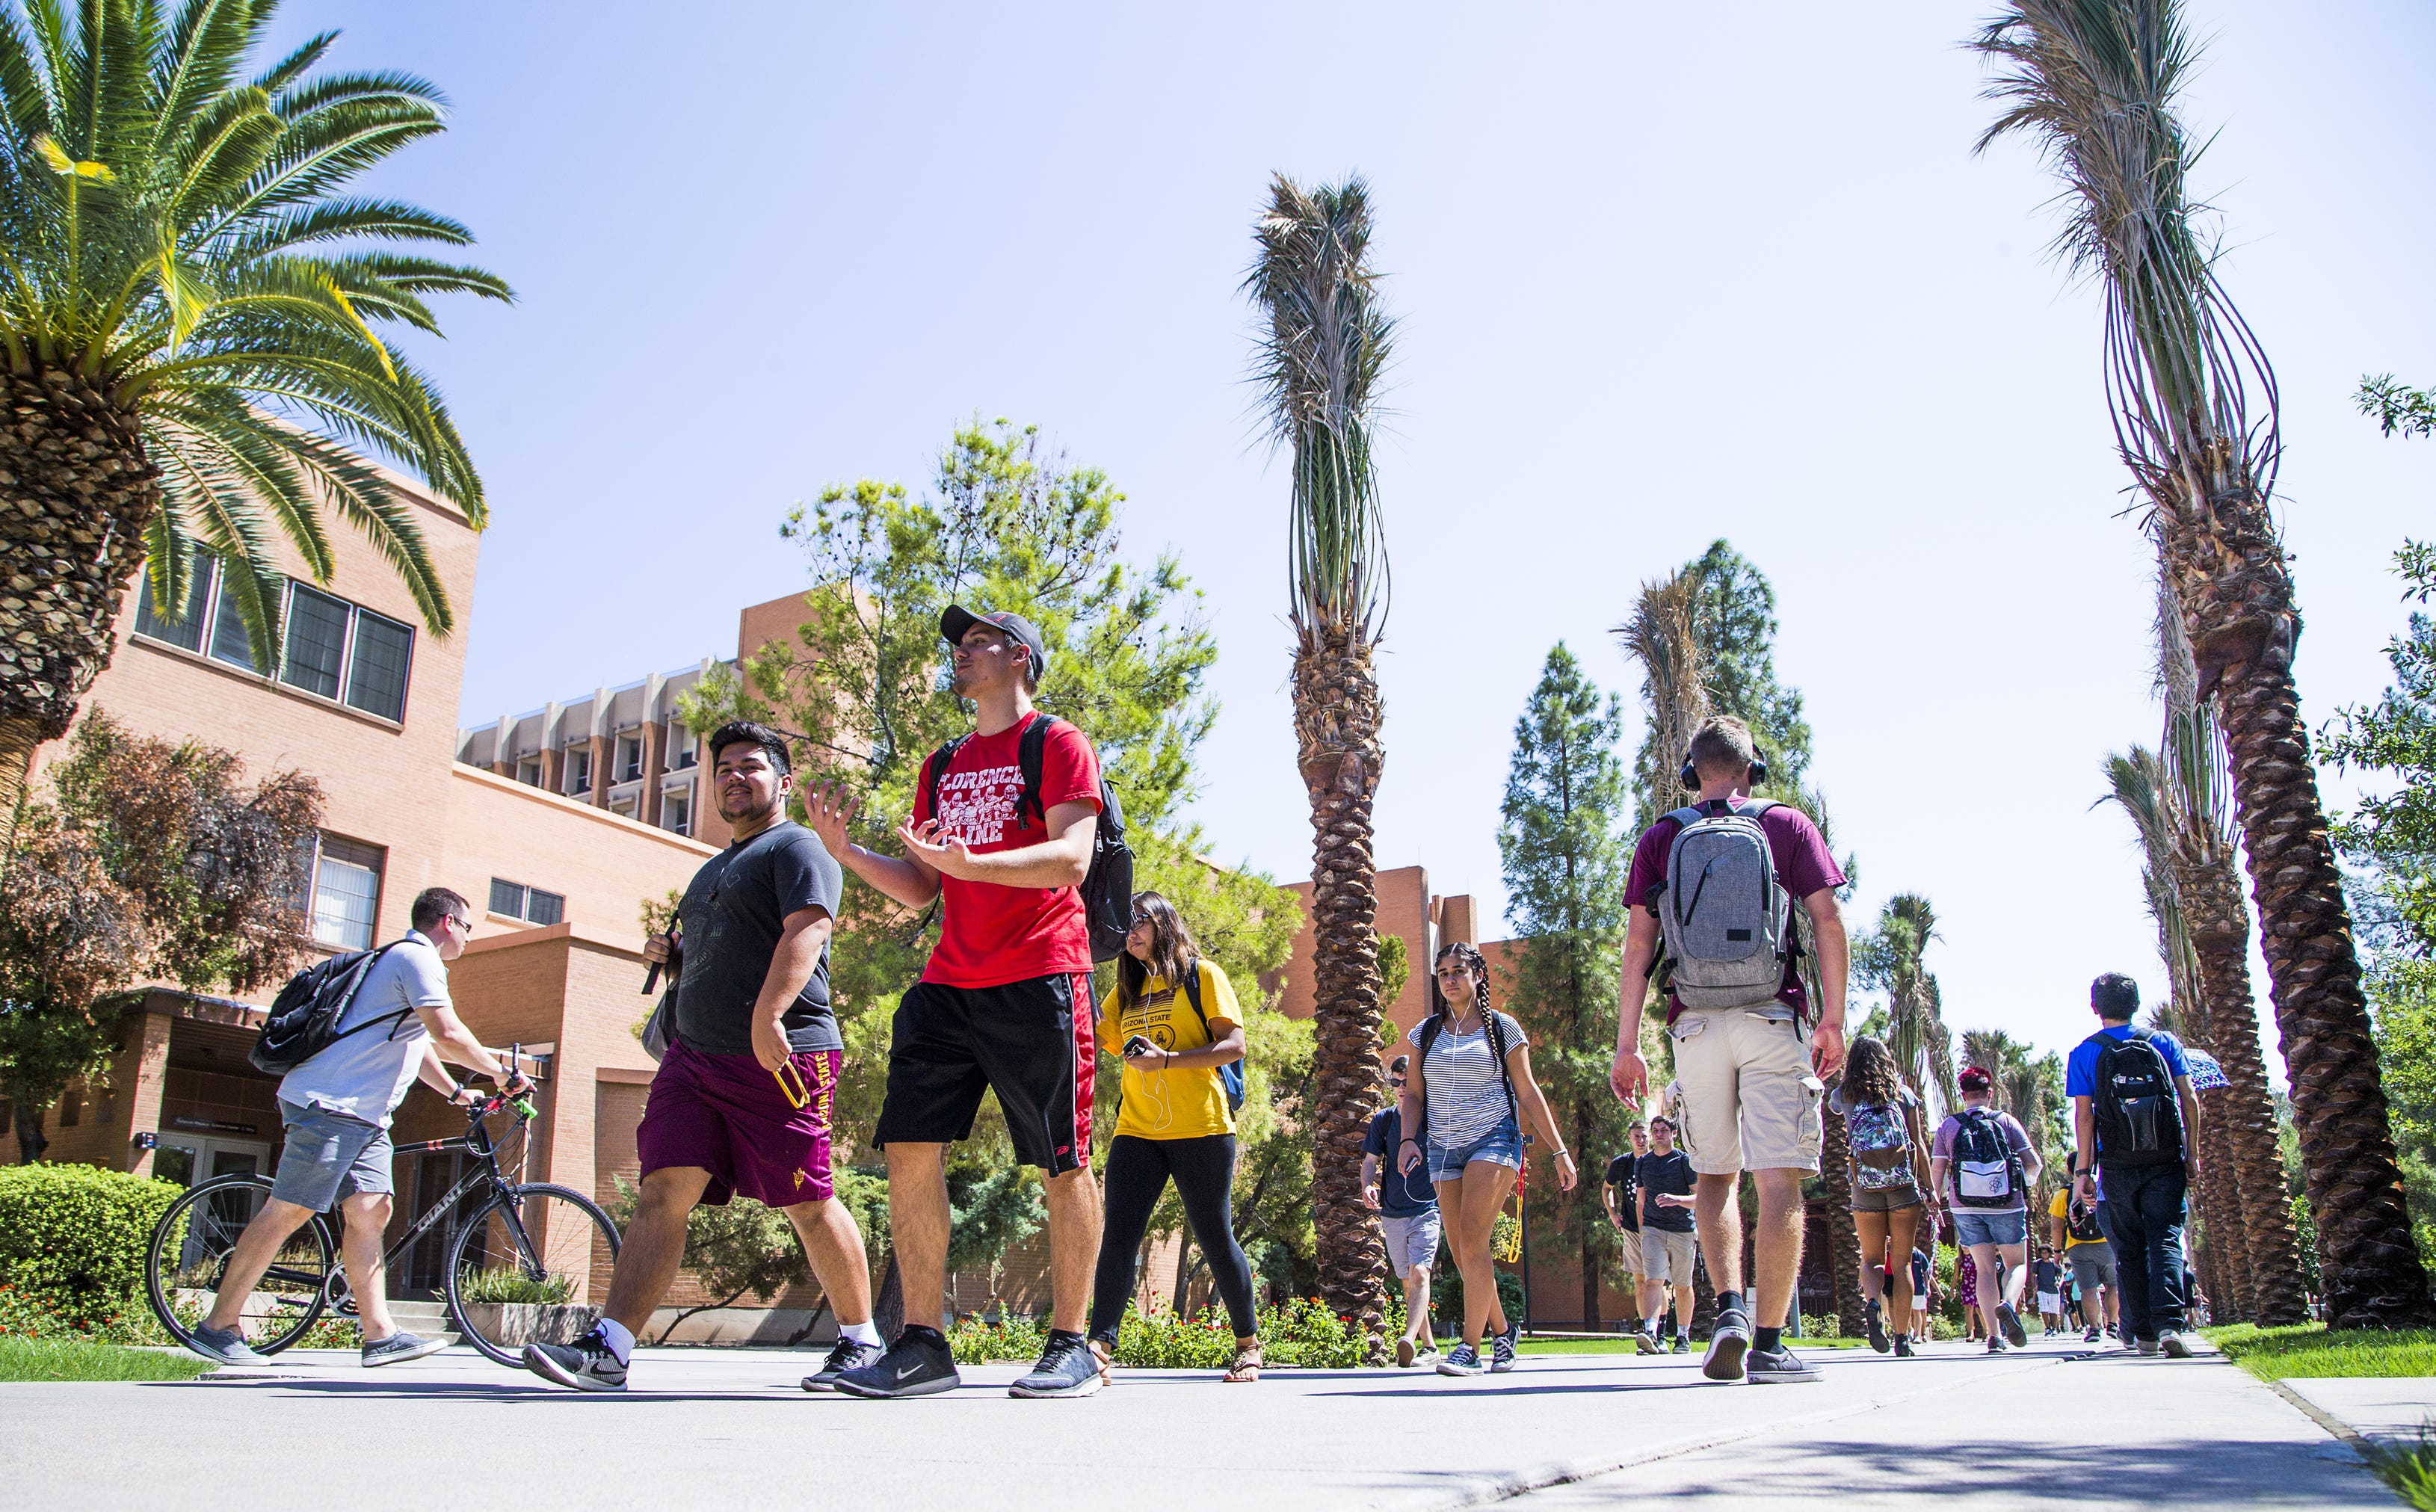 ASU to offer graduate degree in World War II studies, other new programs | Arizona Central